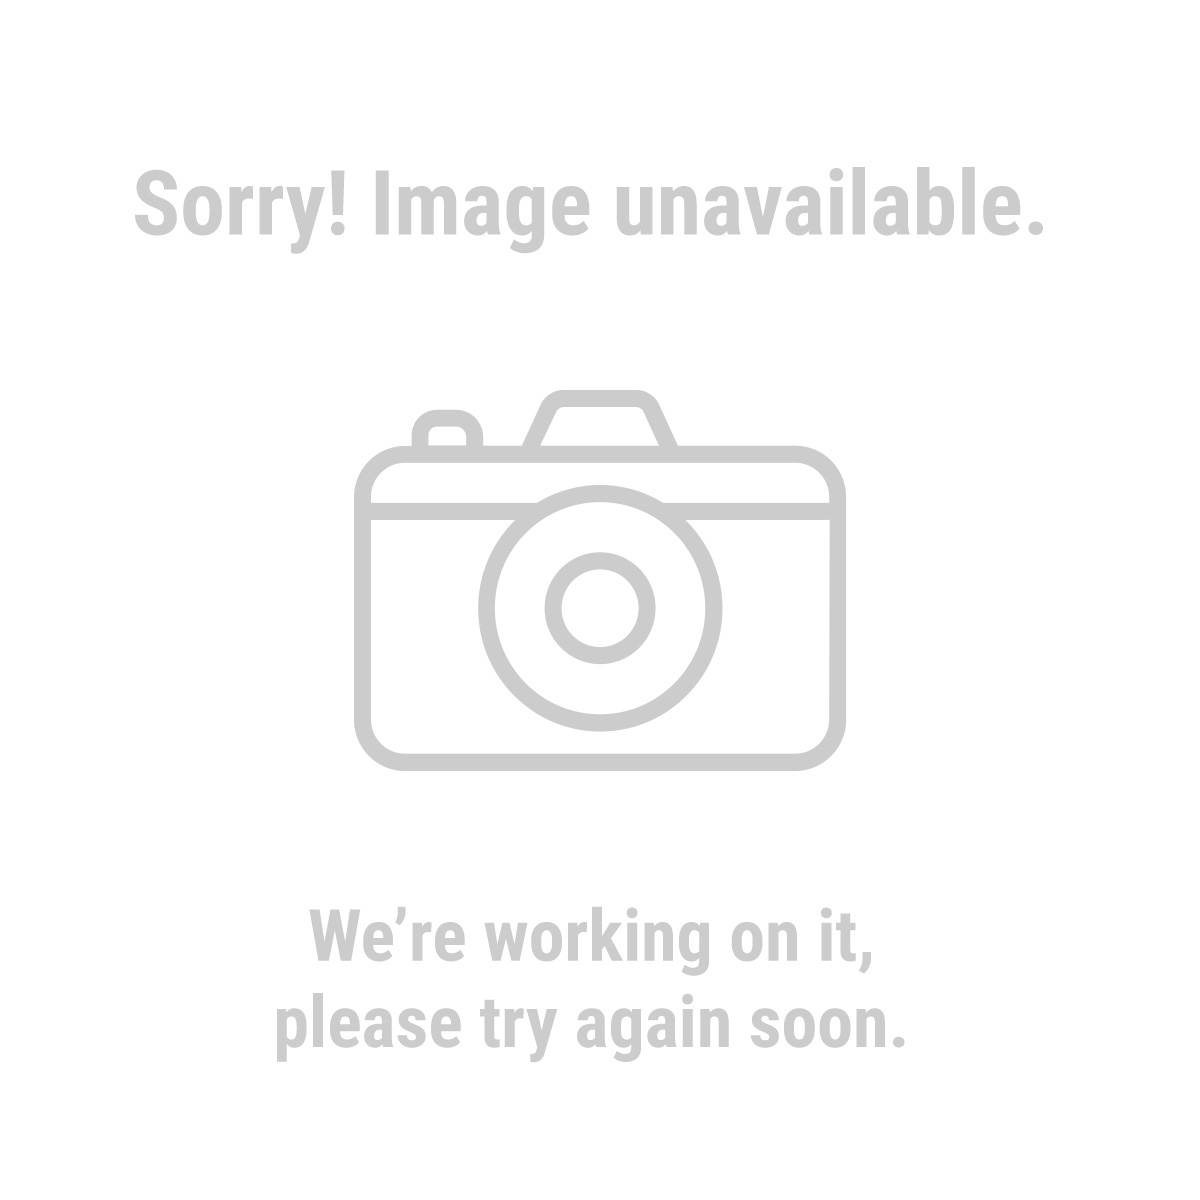 Predator Generators 68530 420cc, 8750 Watts Max/7000 Watts Rated Portable Generator